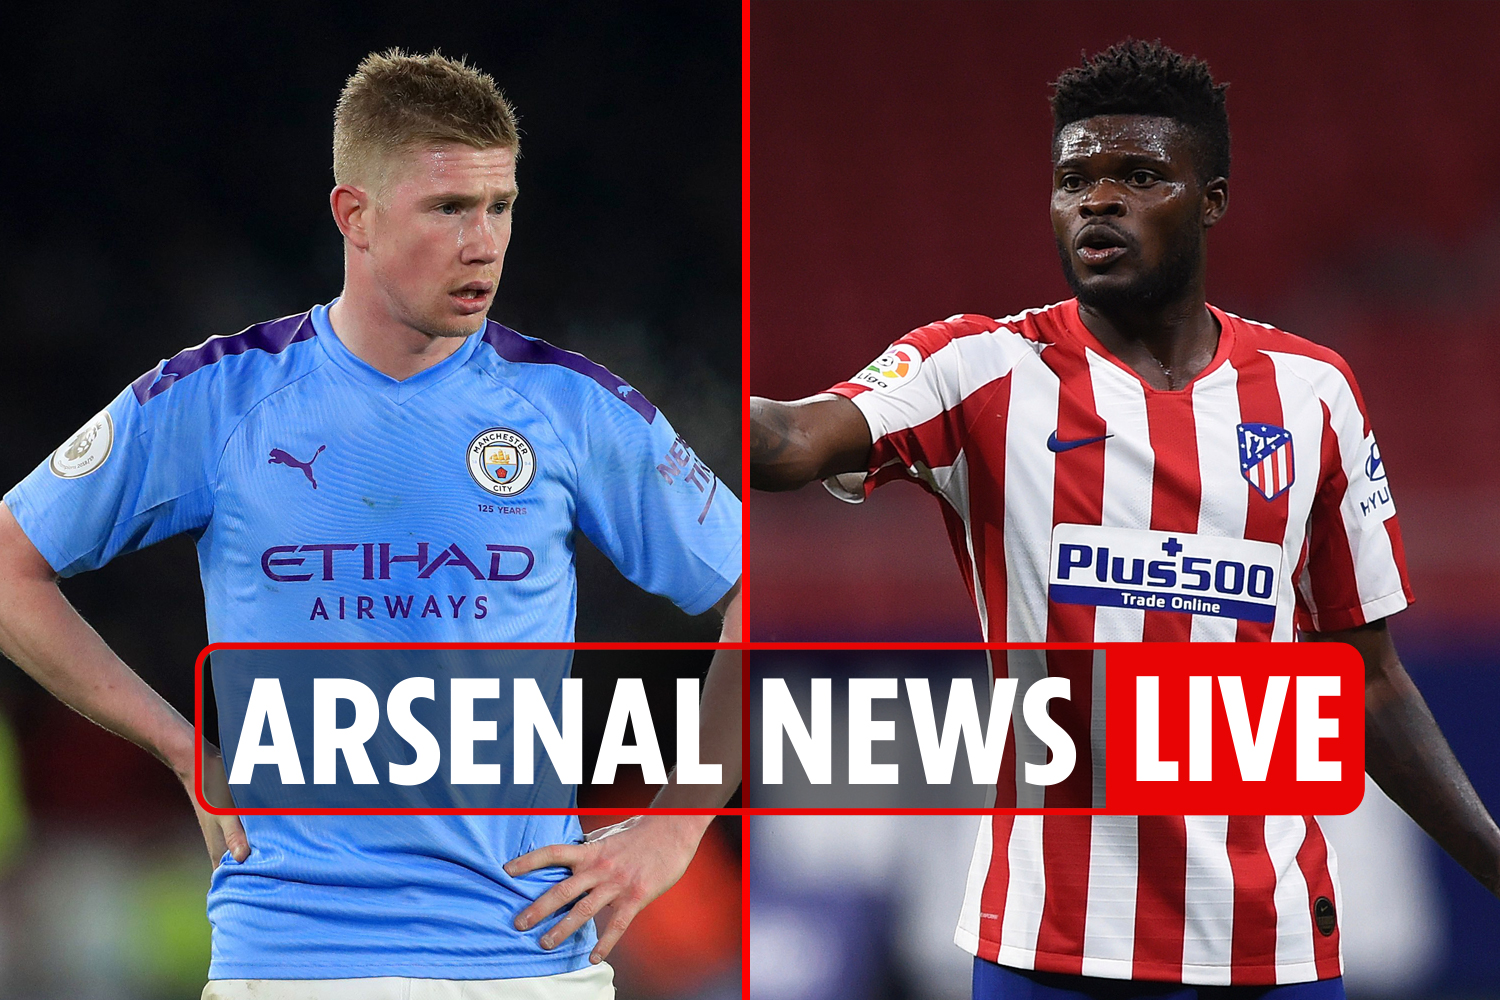 12pm Arsenal news LIVE: Partey preparing for debut, De Bruyne OUT vs City, Tierney UPDATE, Saliba transfer